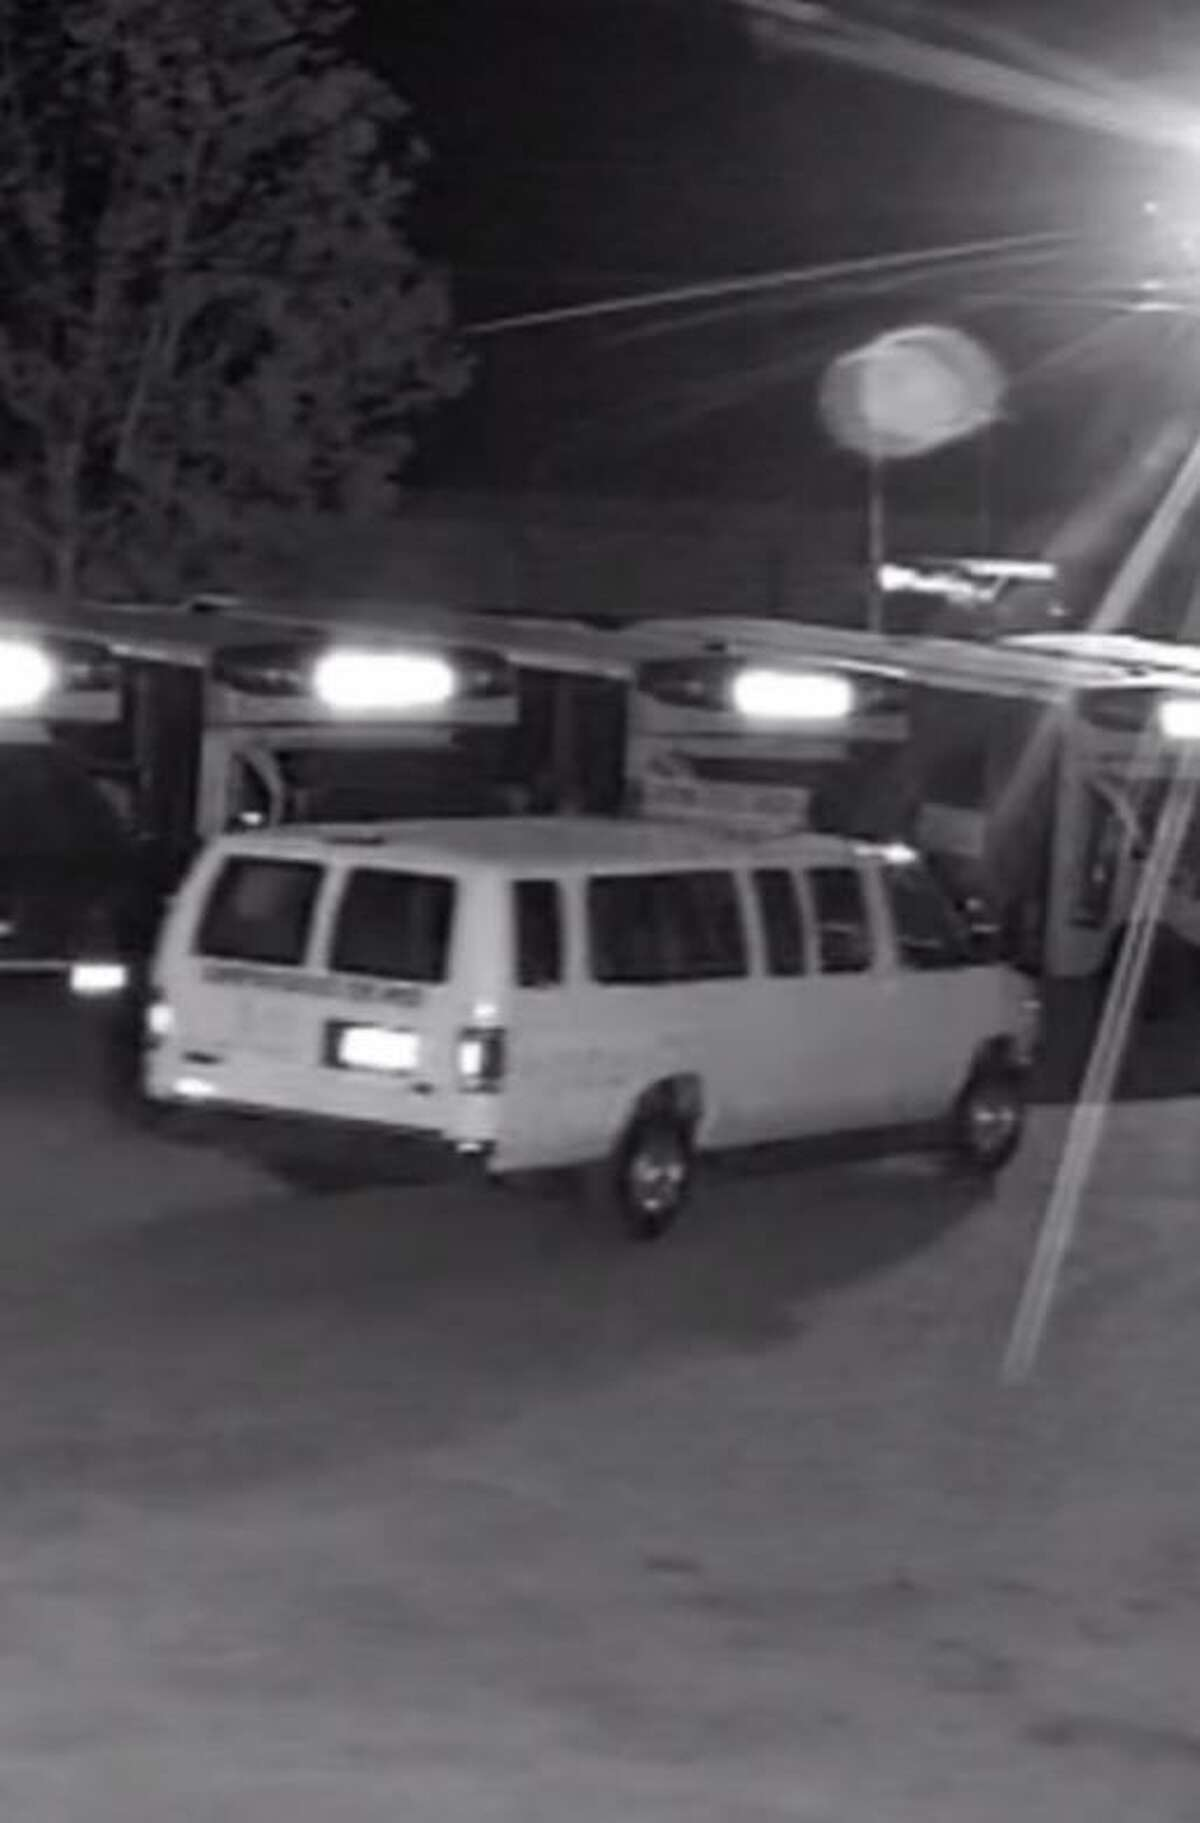 New Milford police say this vehicle was used by two suspects who stole 11 catalytic converters from vehicles parked at All-Star Transportation on Dodd Road during the early morning hours of June 3, 2021.